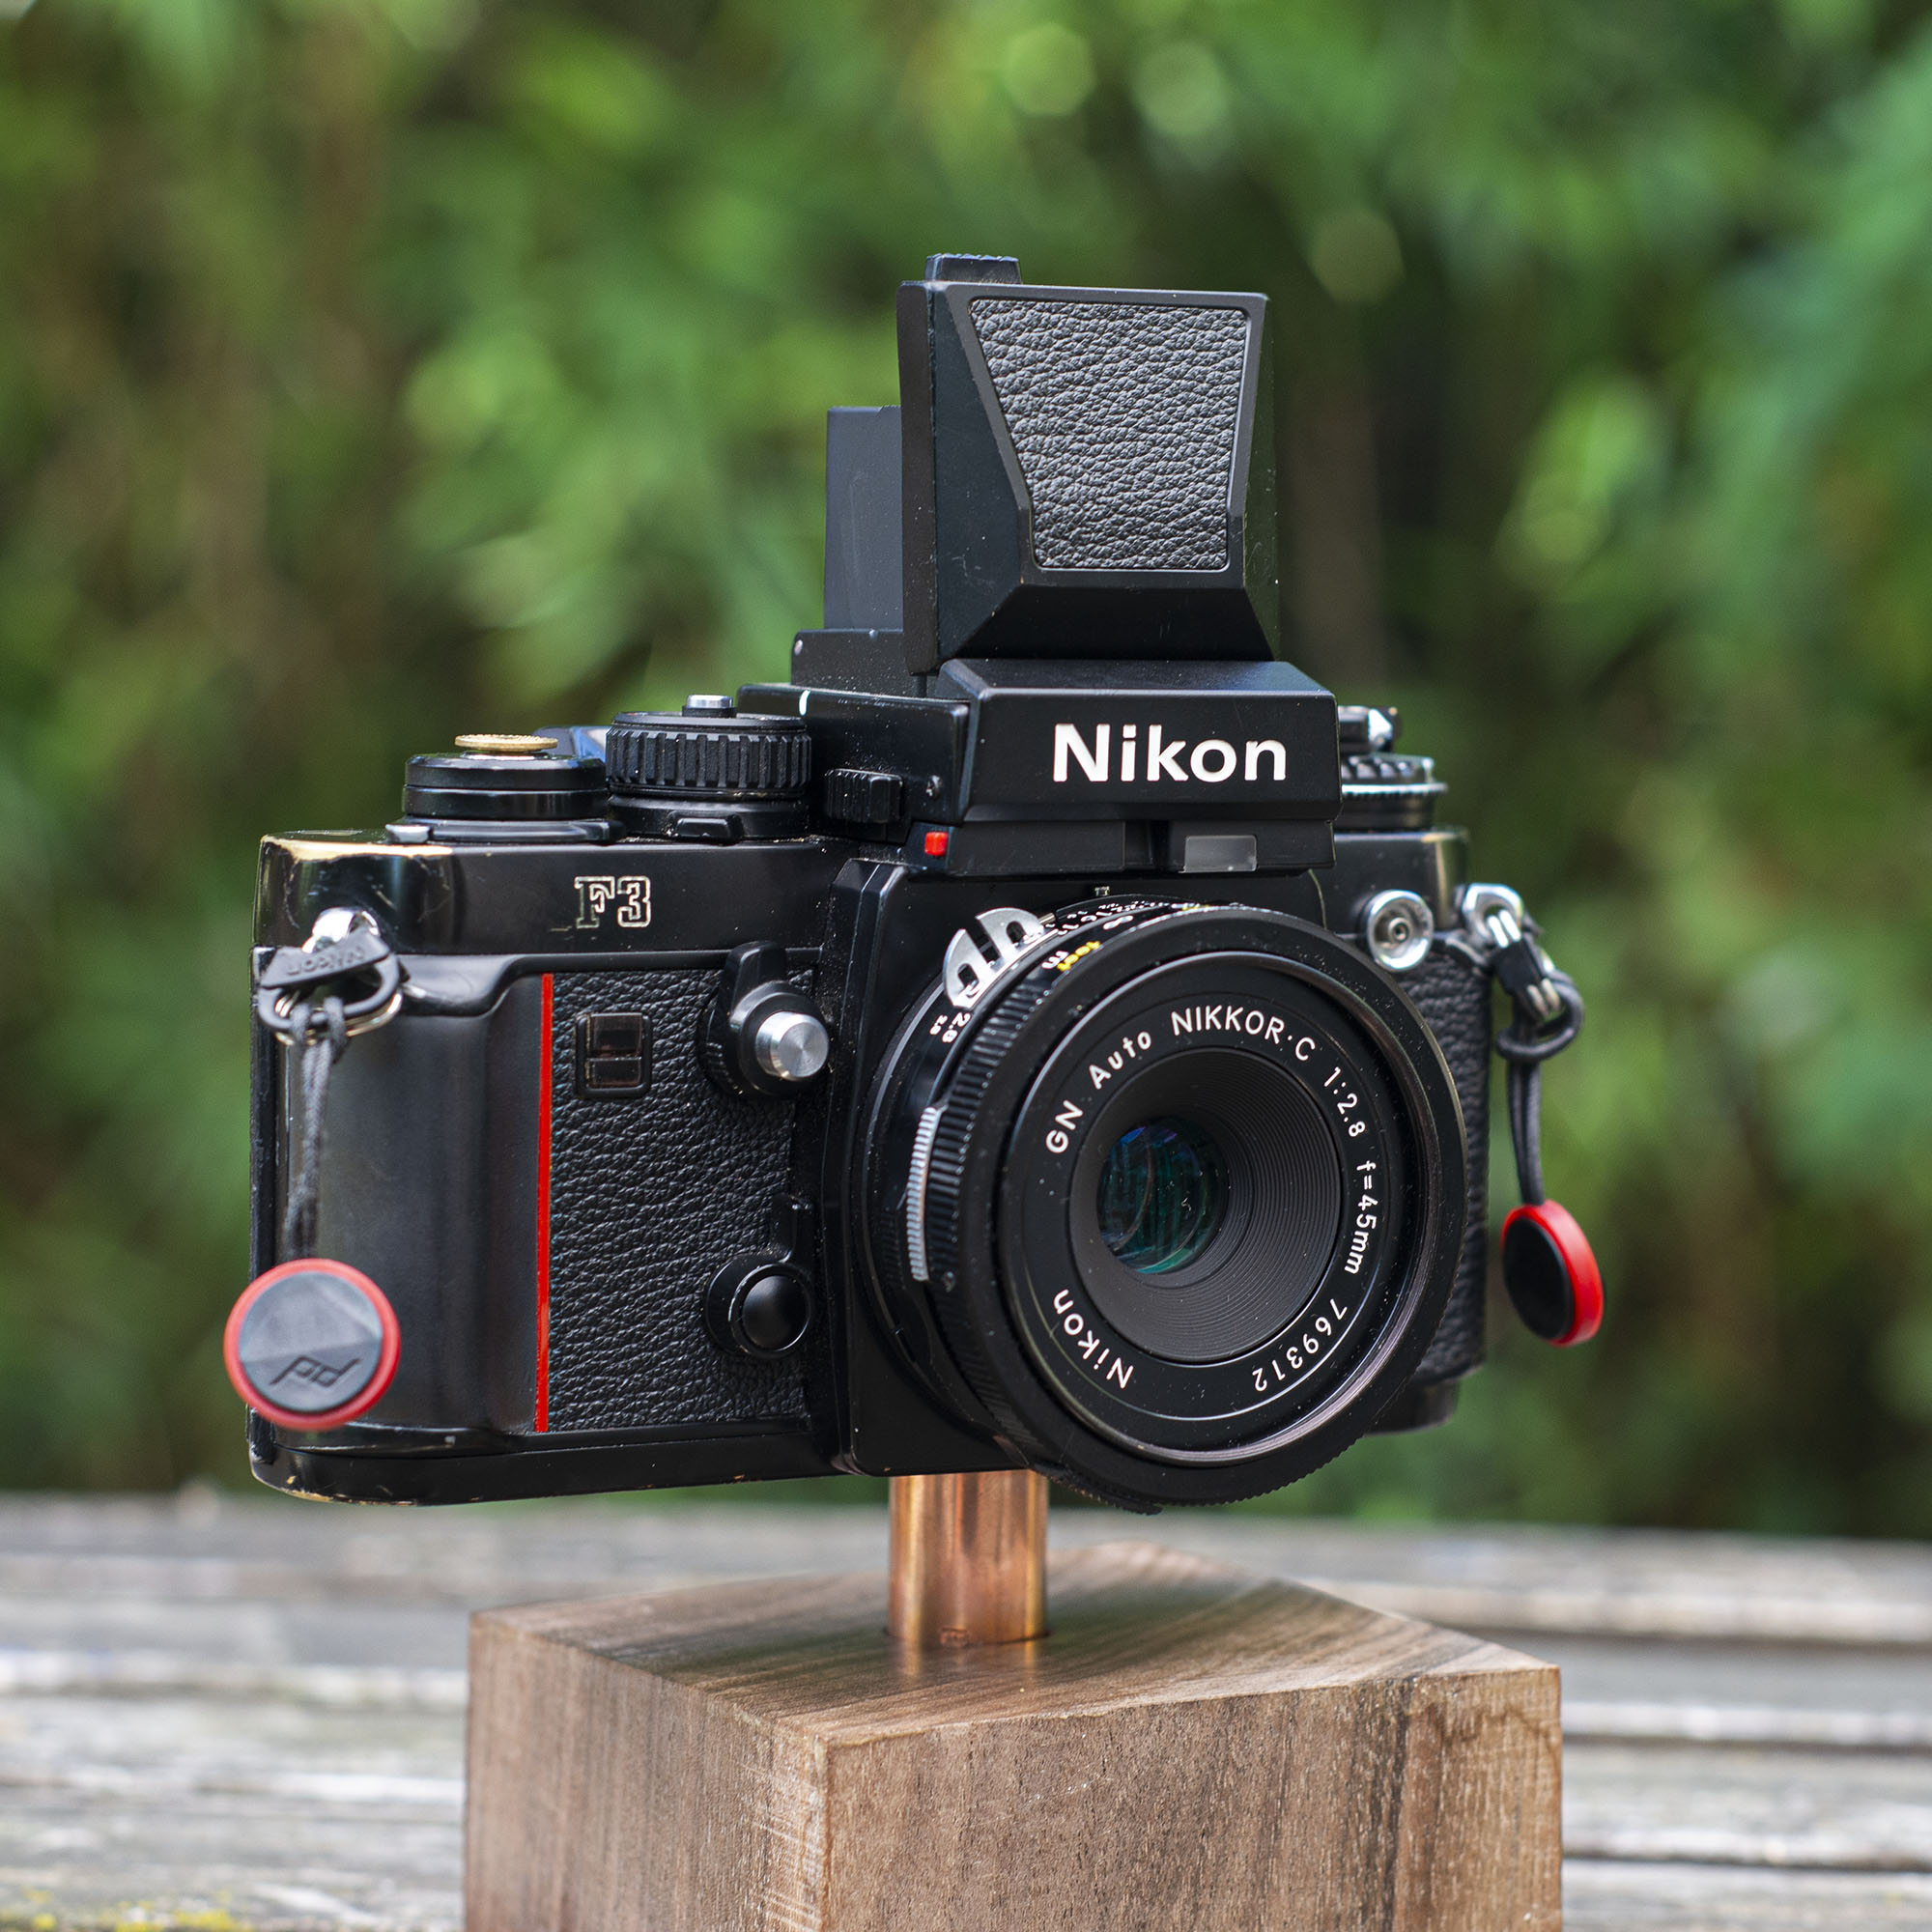 Nikon F3 with a waist level finder